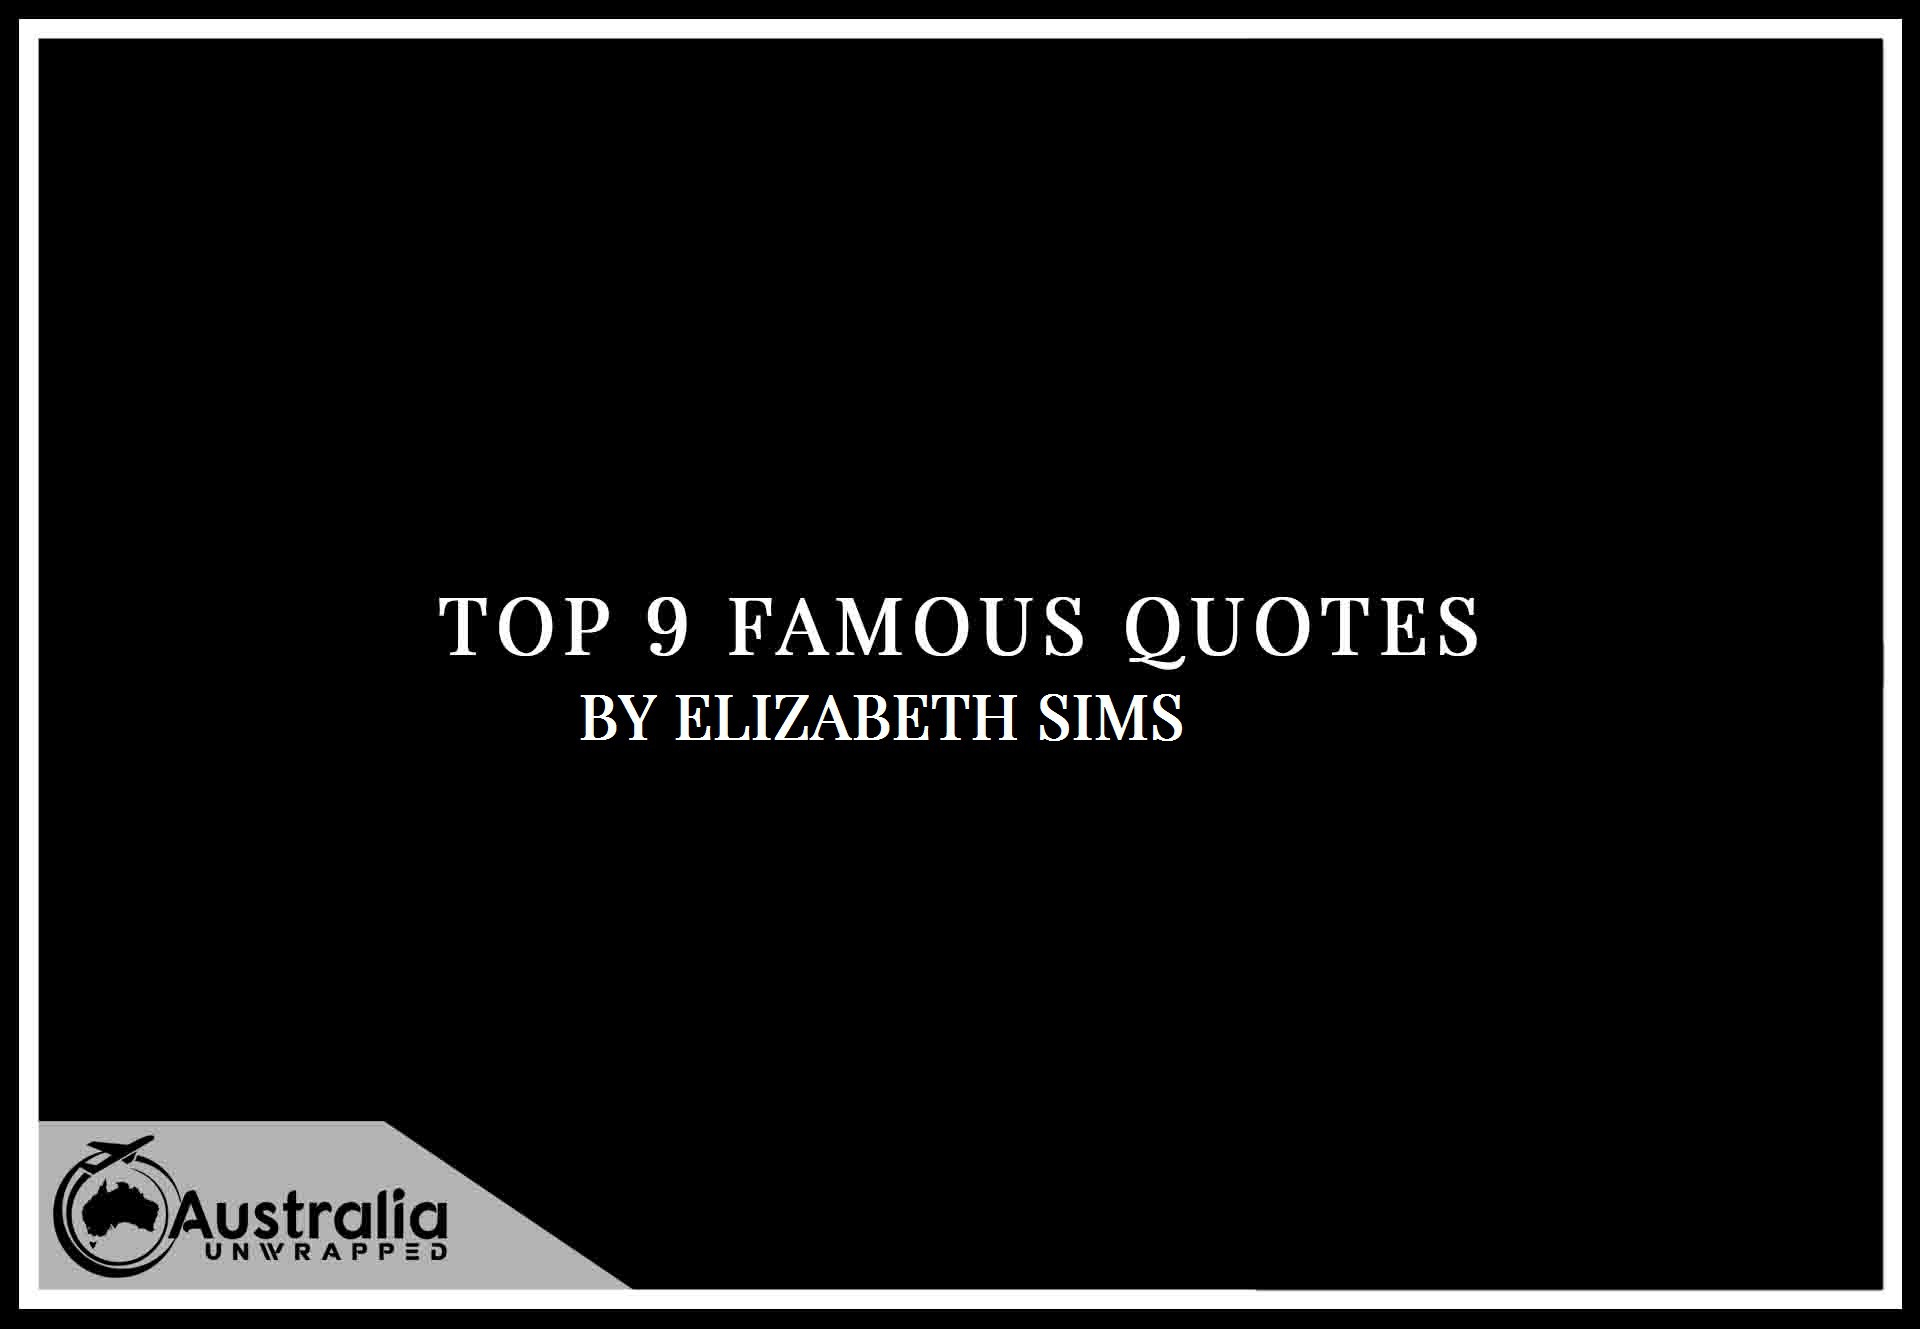 Elizabeth Sims's Top 9 Popular and Famous Quotes